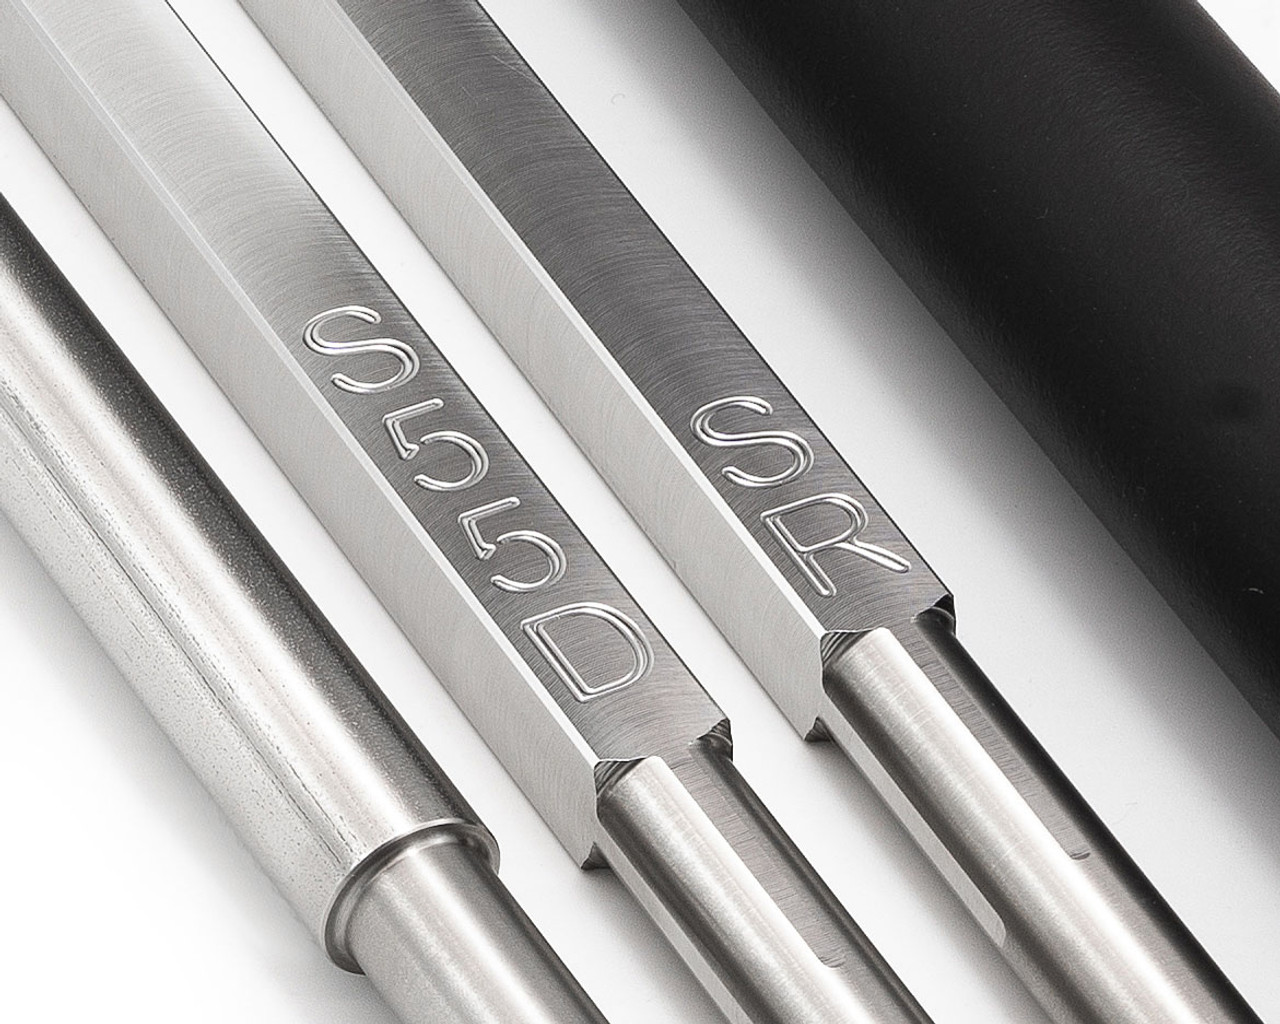 Engraving on carbide lathe tools helps identify cutter selection.